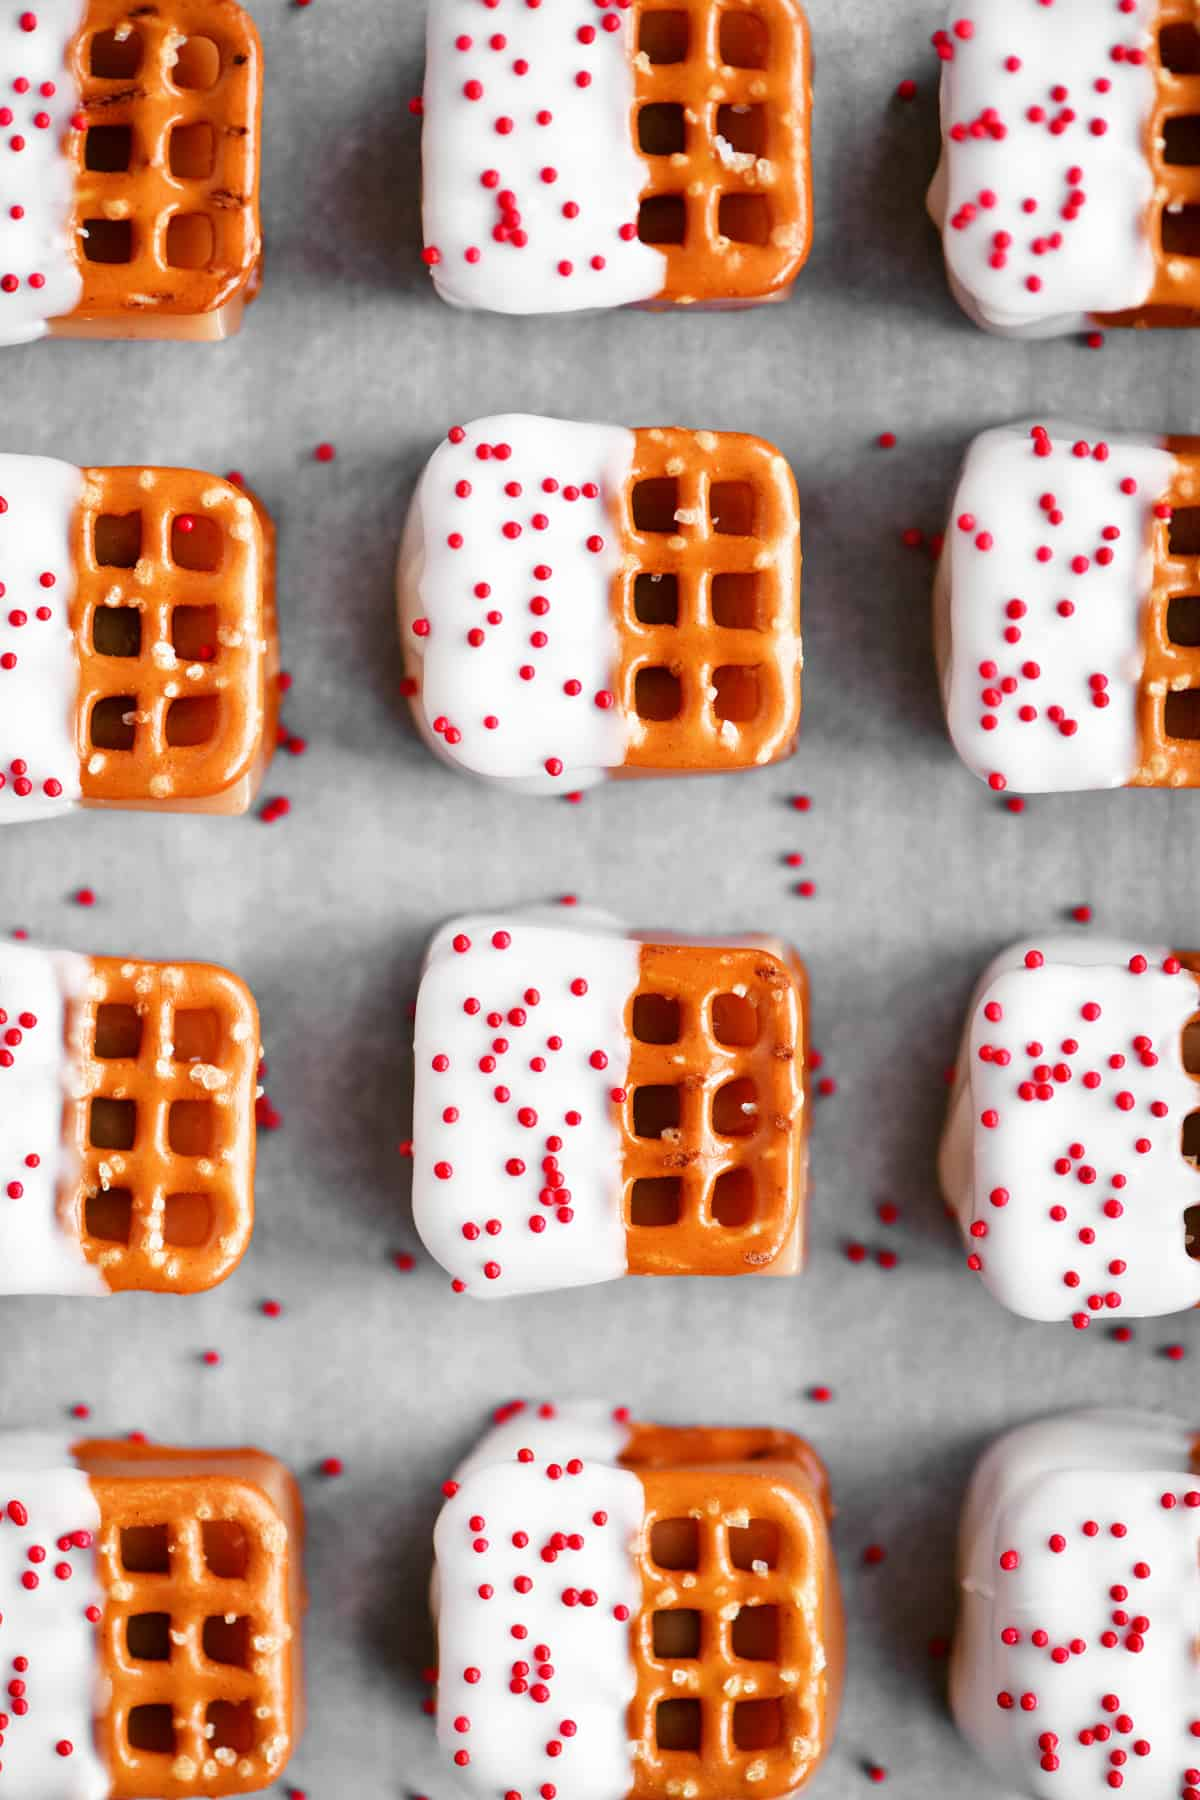 a top down view of the pretzel bites with red sprinkles